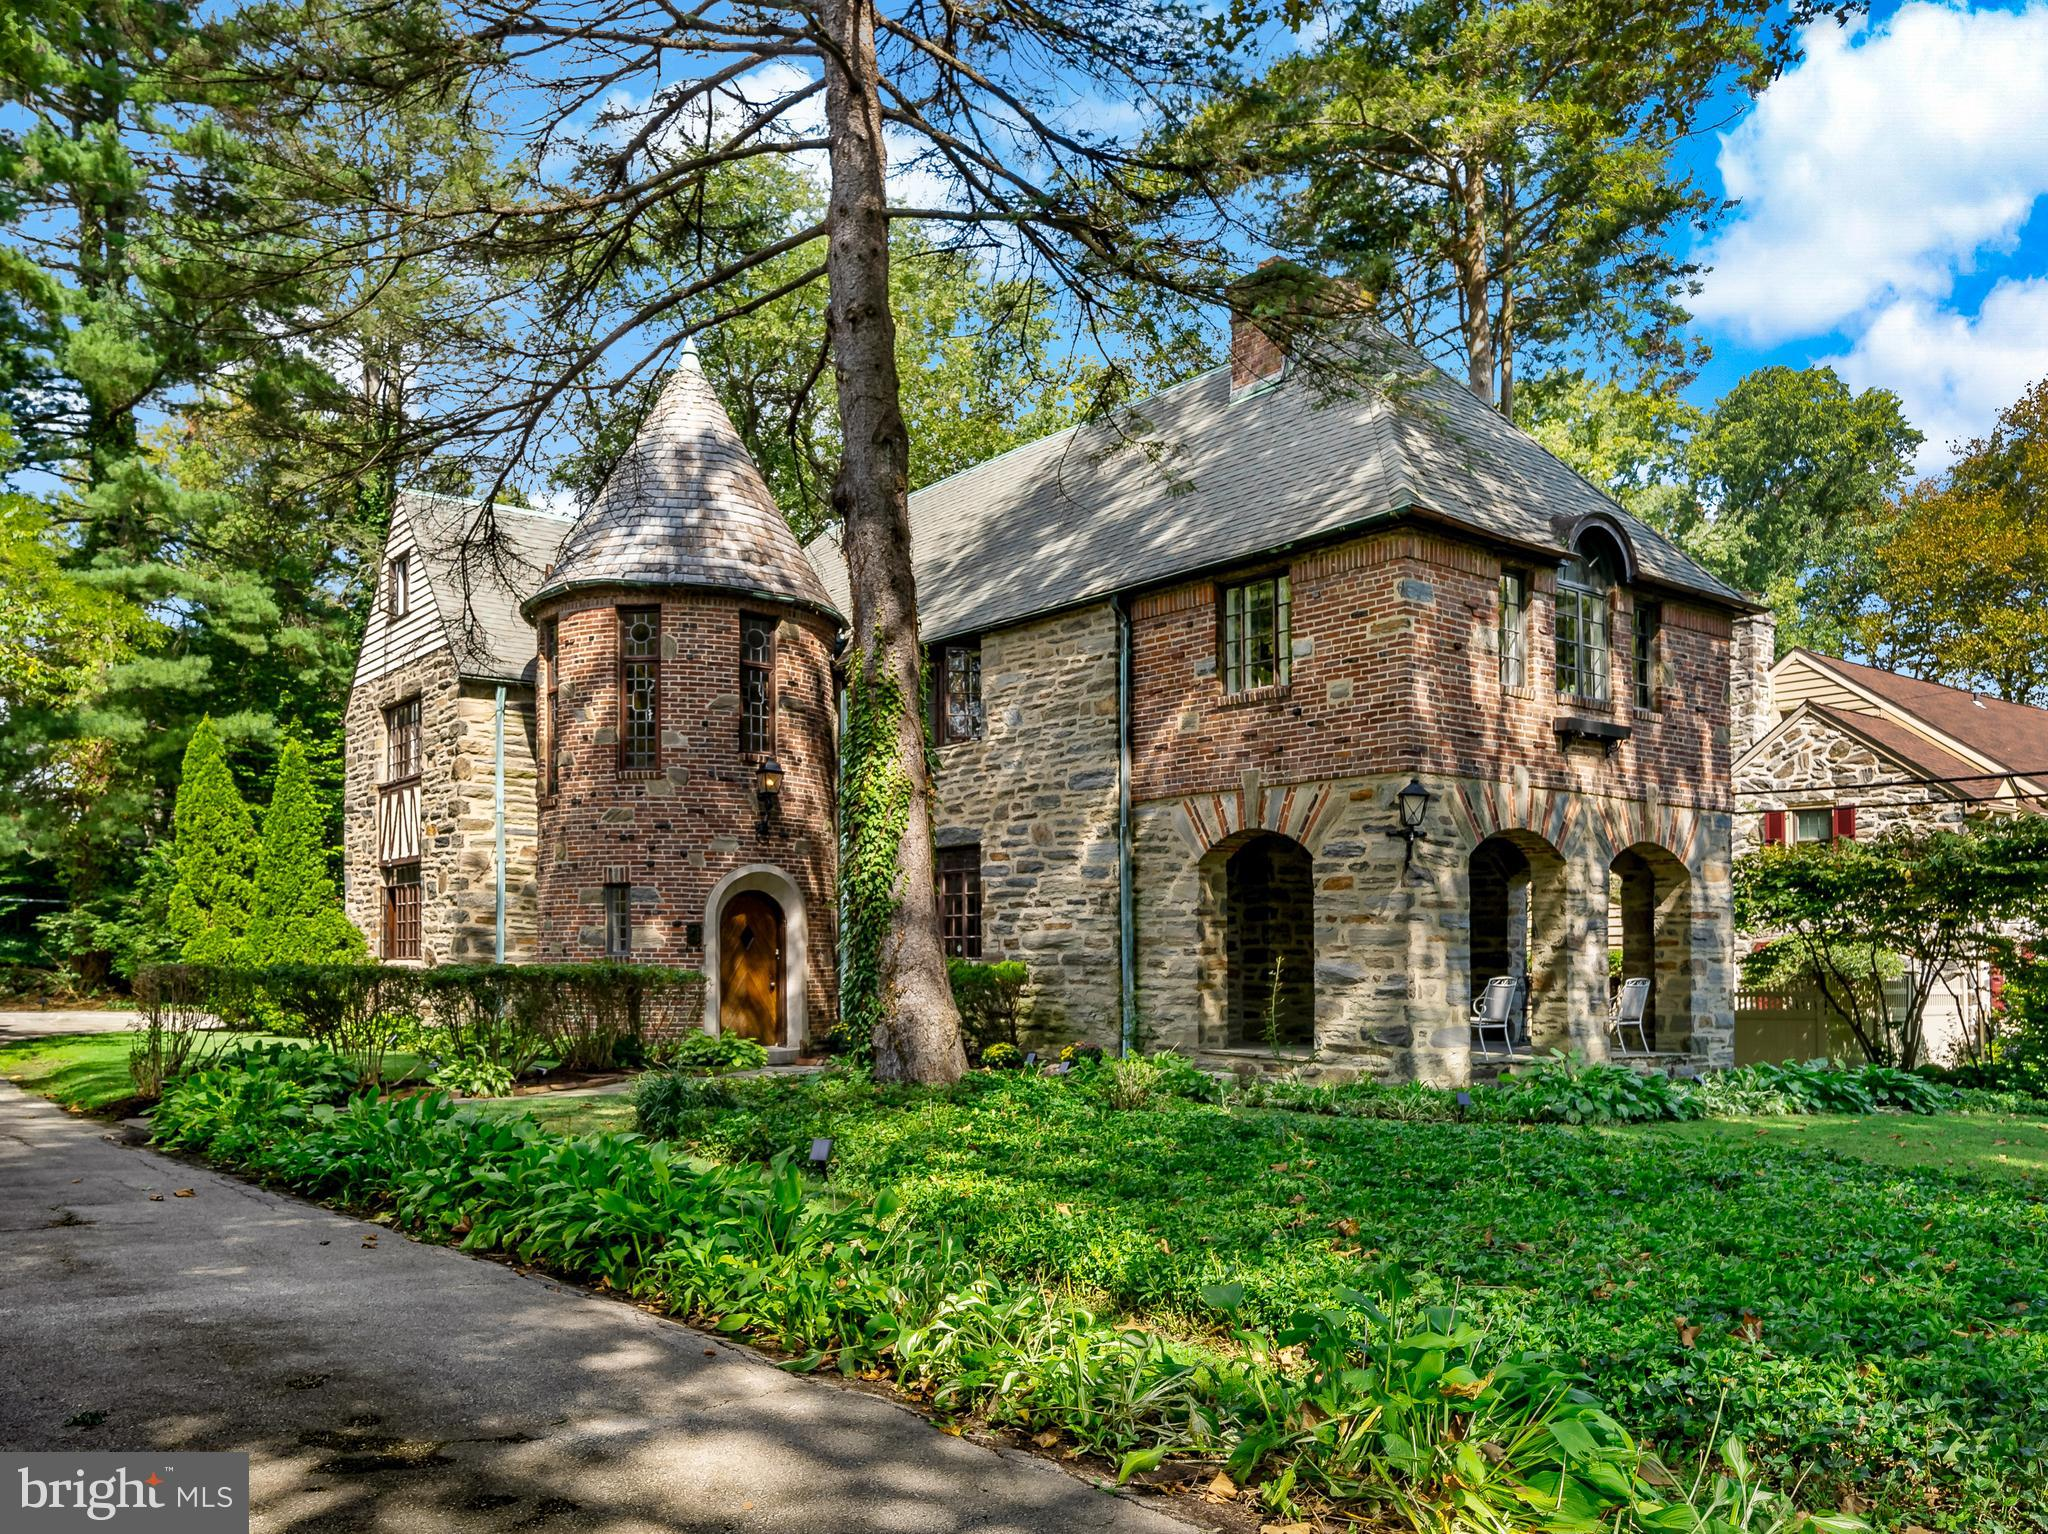 It is impossible not to marvel at the unique architecture and endless potential of this enchanting French Norman style home by architect/builder Henry D. Dagit & Sons. Filled with original features, such as its castle-like turret with grand curved staircase, unique wood beam ceilings, Juliette balconies, French doors, stone and hardwood floors and three beautiful wood burning fireplaces.  It is located in the safe, friendly and walkable neighborhood with easy access to the city; 1309 Morris Road is located in the Minden Manor area of Wynnewood, and gives you old-world charm with modern day conveniences.   When you enter this home, the foyer leads you to a spacious, light-filled living room with timeless, elegant features like the wood beam ceiling, built-in bookcase, coat closet, hard wood floors and an exquisite crested stone wood-burning fireplace. From the living room, walk directly through the French door onto the covered flagstone porch used throughout the year. To the left of the living room is the formal dining room, with doors leading to a Butlers pantry and into the eat-in kitchen, the perfect place to host all your grand holiday parties. Off the kitchen, you will find a mudroom/pantry, the laundry room and direct access to an attached two-car garage.    In the turret, a small powder room is located under the curved staircase with a wrought iron railing, which leads you to the second floor. Here you will find the primary bedroom, which boasts hardwood floors, a wood-burning fireplace, a large deep closet, charming Juliette balcony, and a separate sitting/dressing room with additional closet space and private full bath. Also on the second floor, there are 3 other bedrooms with hardwood floors, one of which also has a Juliette balcony. Two of the bedrooms share a bathroom and the other has its own private full bath.   A back hallway leads you to 2 other rooms that can be used as a quiet office space, exercise room, a cheerful playroom, or as additional bedroo